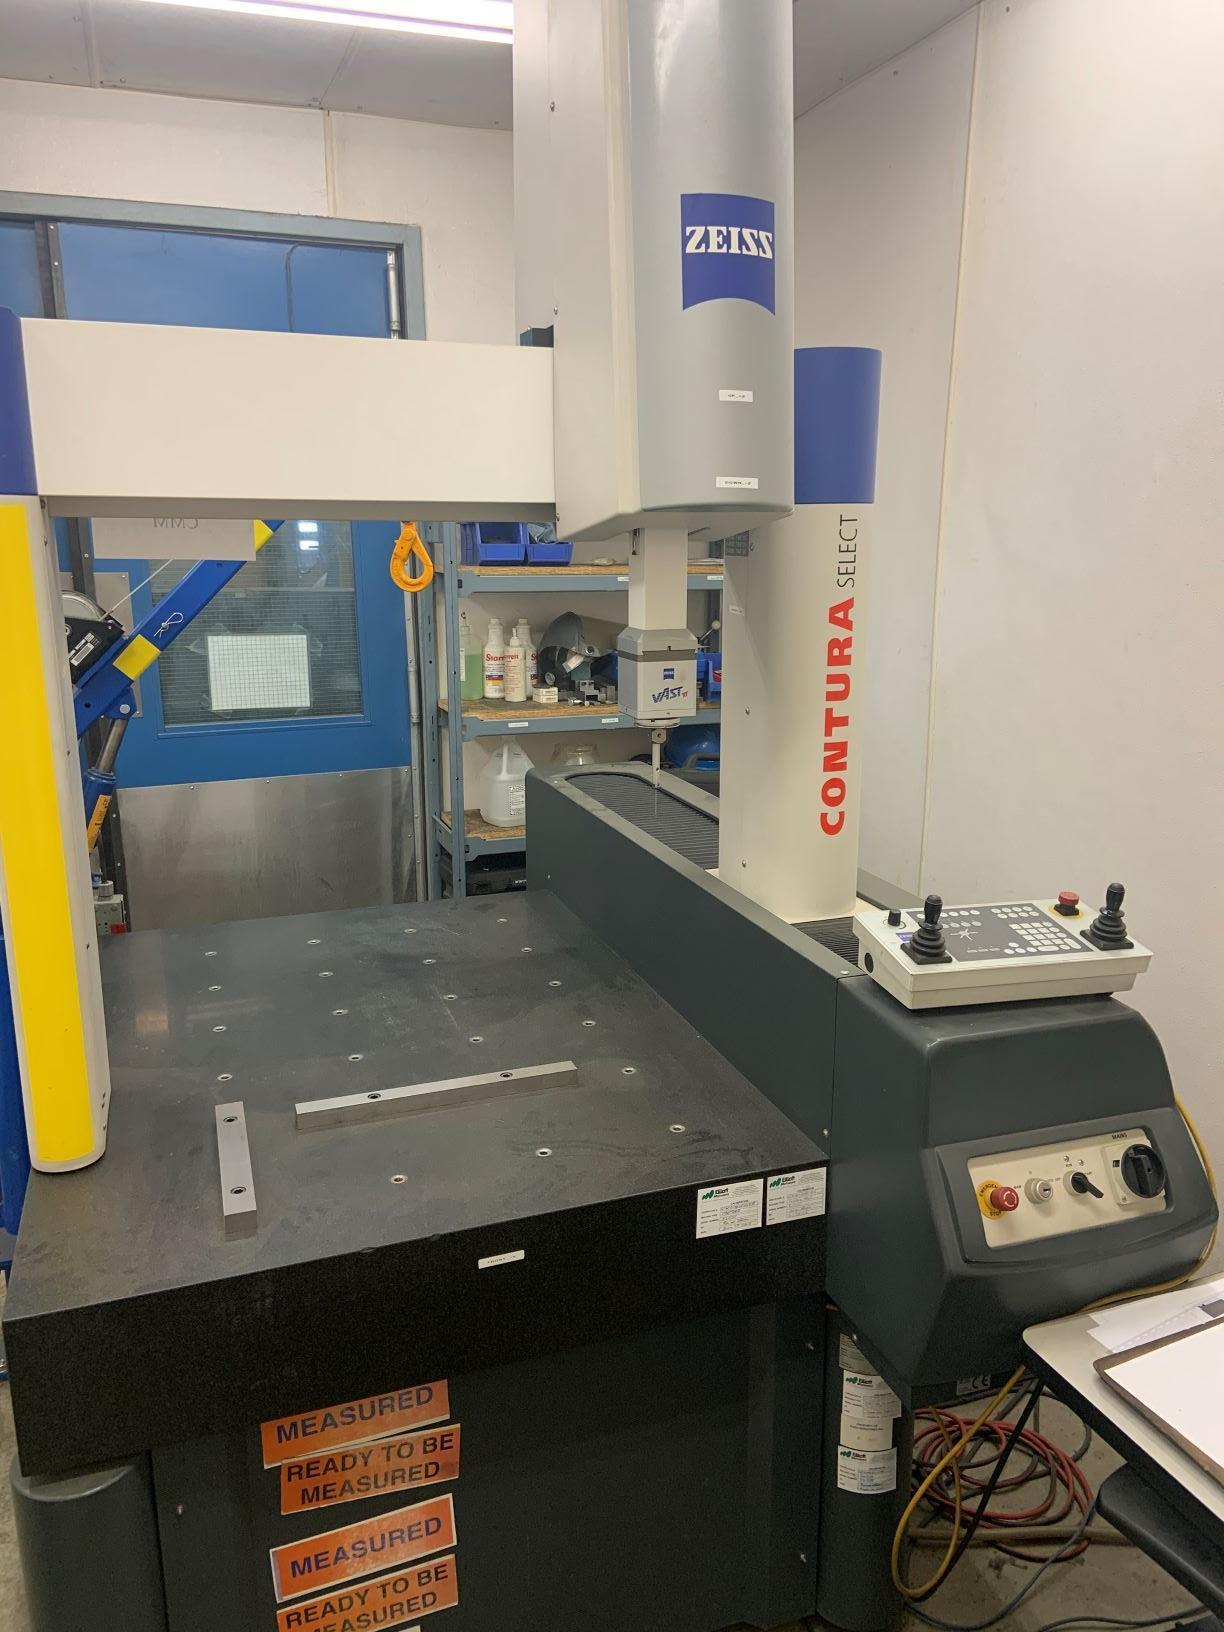 Zeiss Contura 7/10/6, Coordinate Measuring Machine (CMM), Vast XT Probe Head, C99 Controller, Calypso software